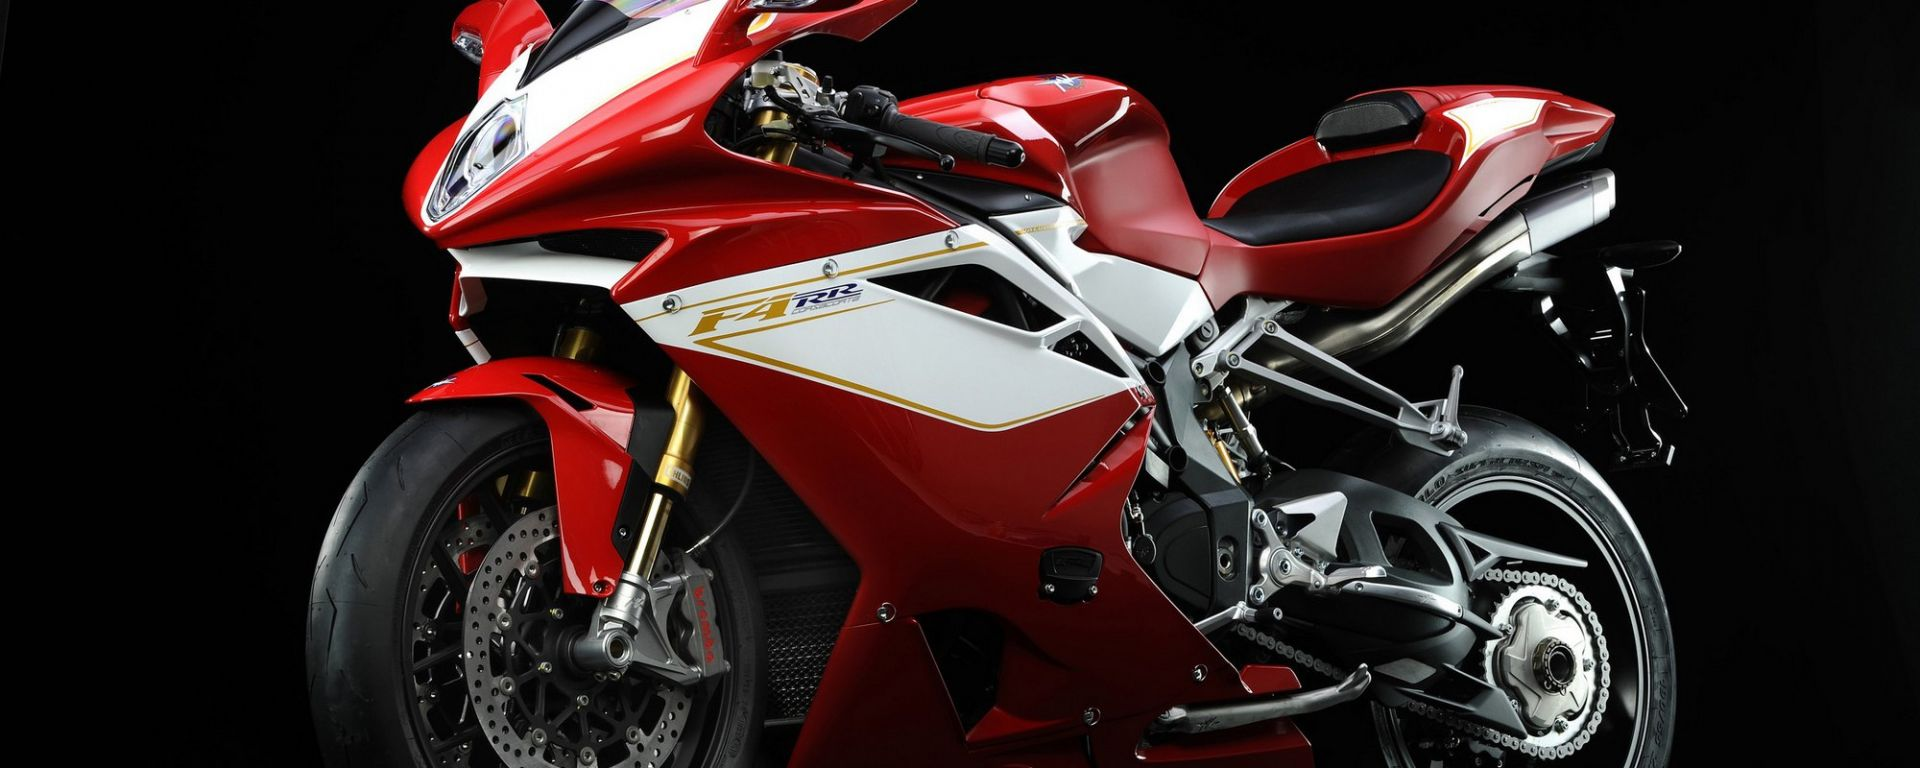 MV Agusta F4 RR, guarda le foto in HD